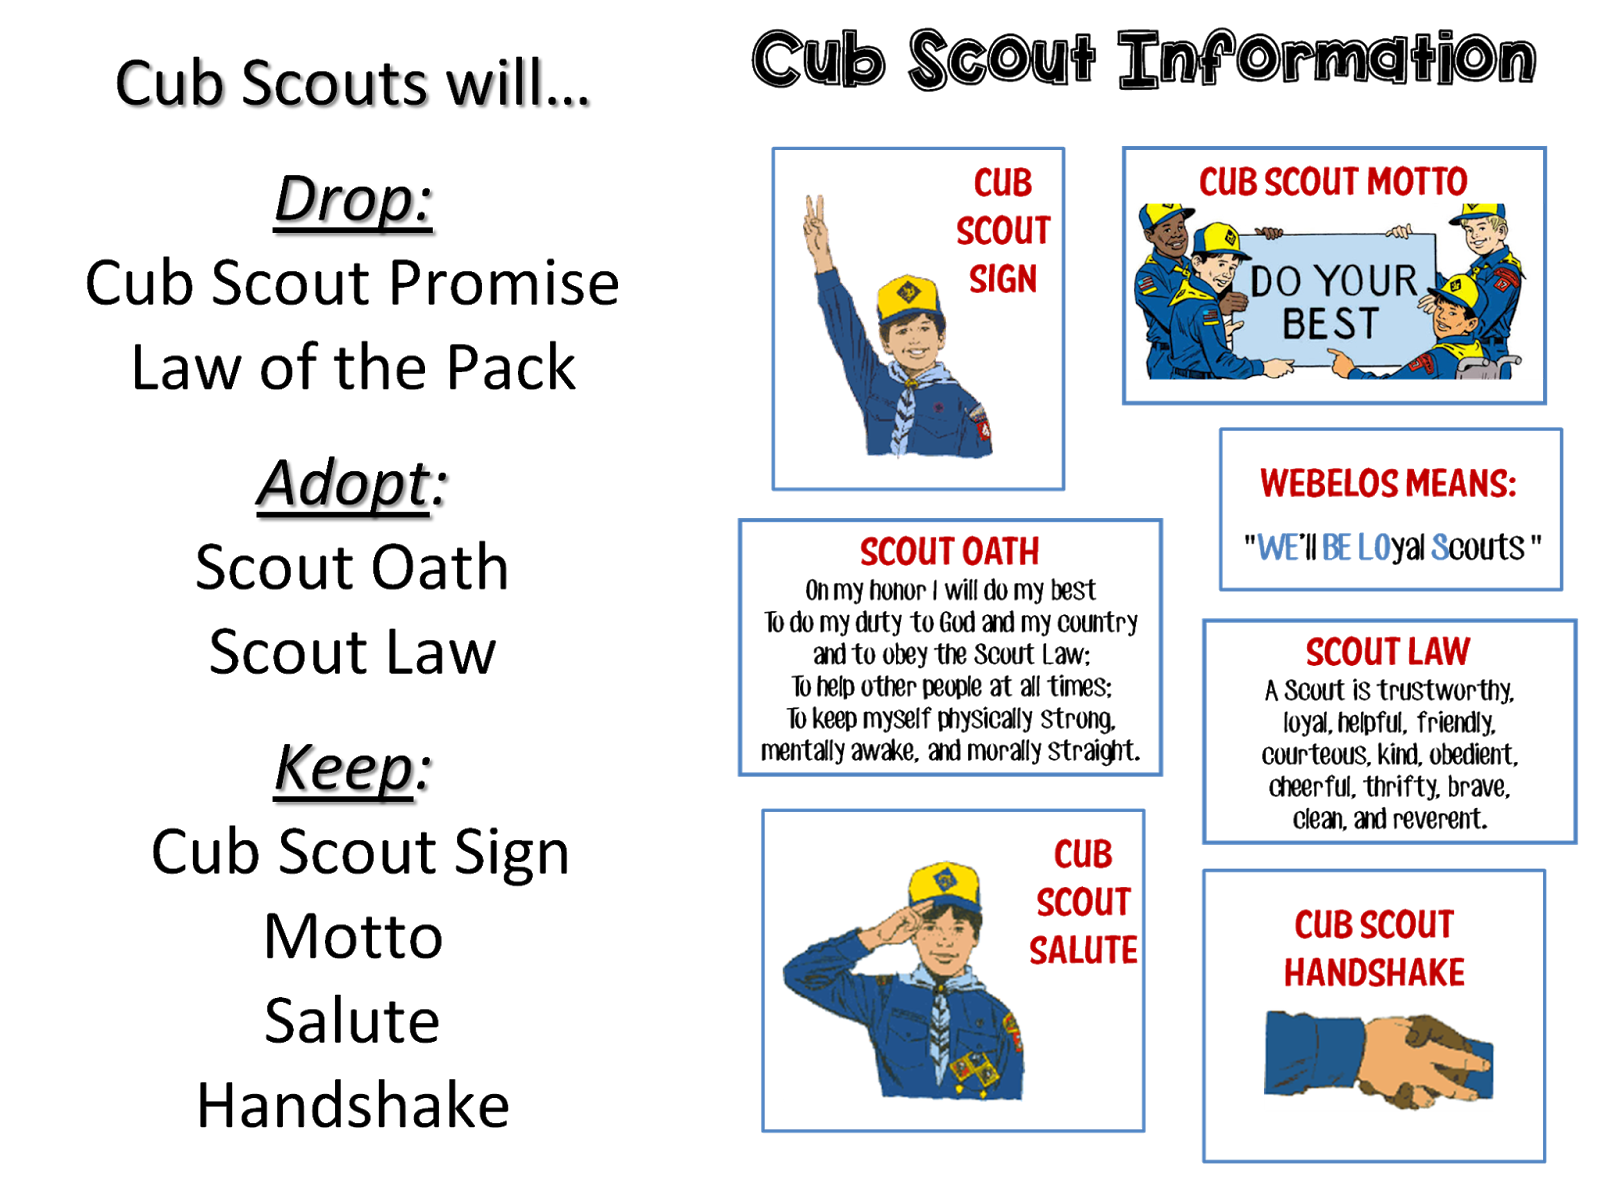 picture relating to Cub Scout Motto in Sign Language Printable titled Estimates regarding Cub Scout (46 prices)